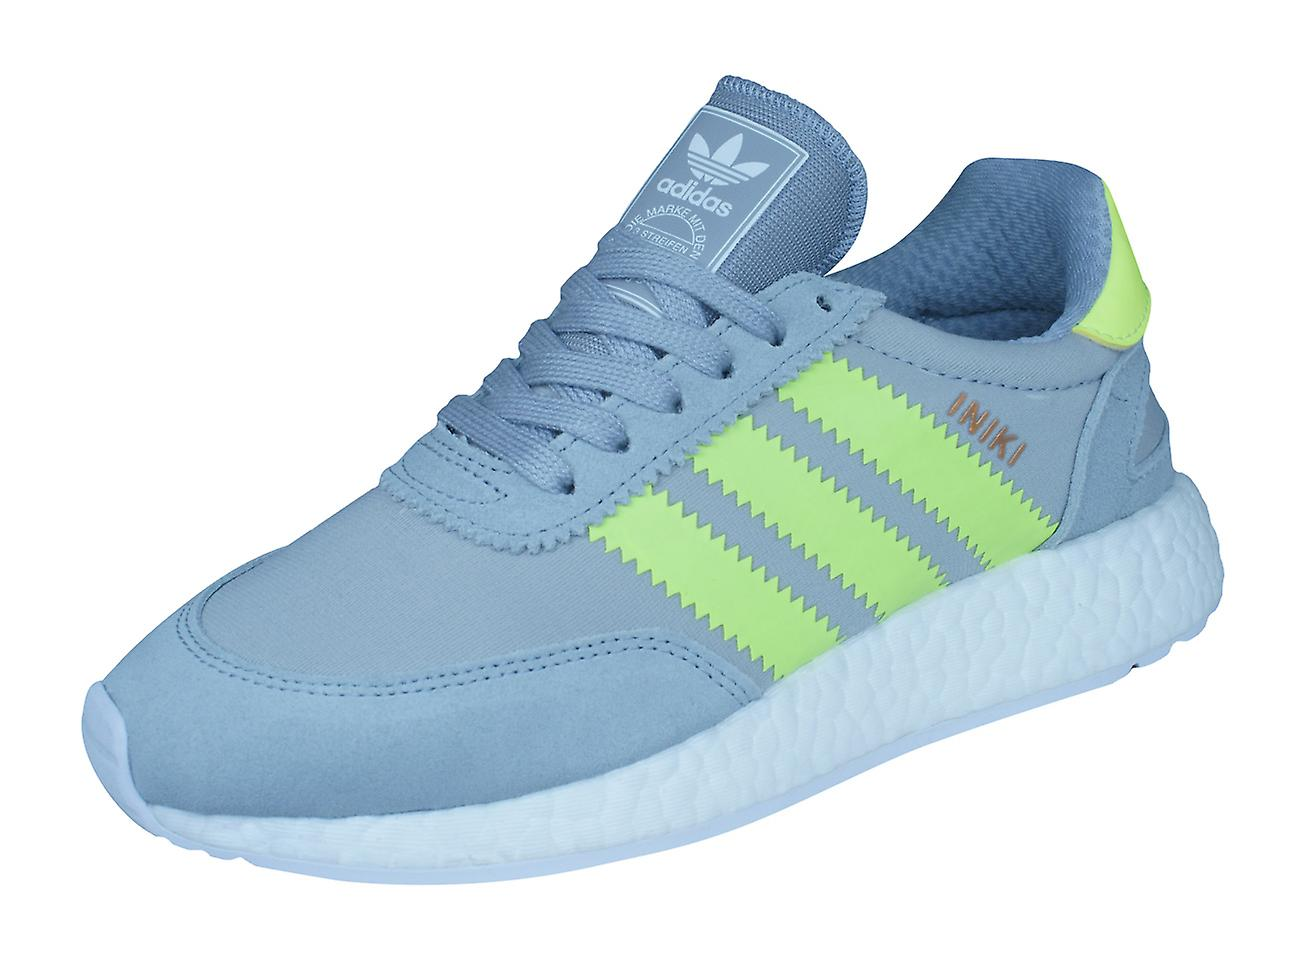 adidas Originals Iniki Runner I 5923 Womens Trainers Shoes Grey